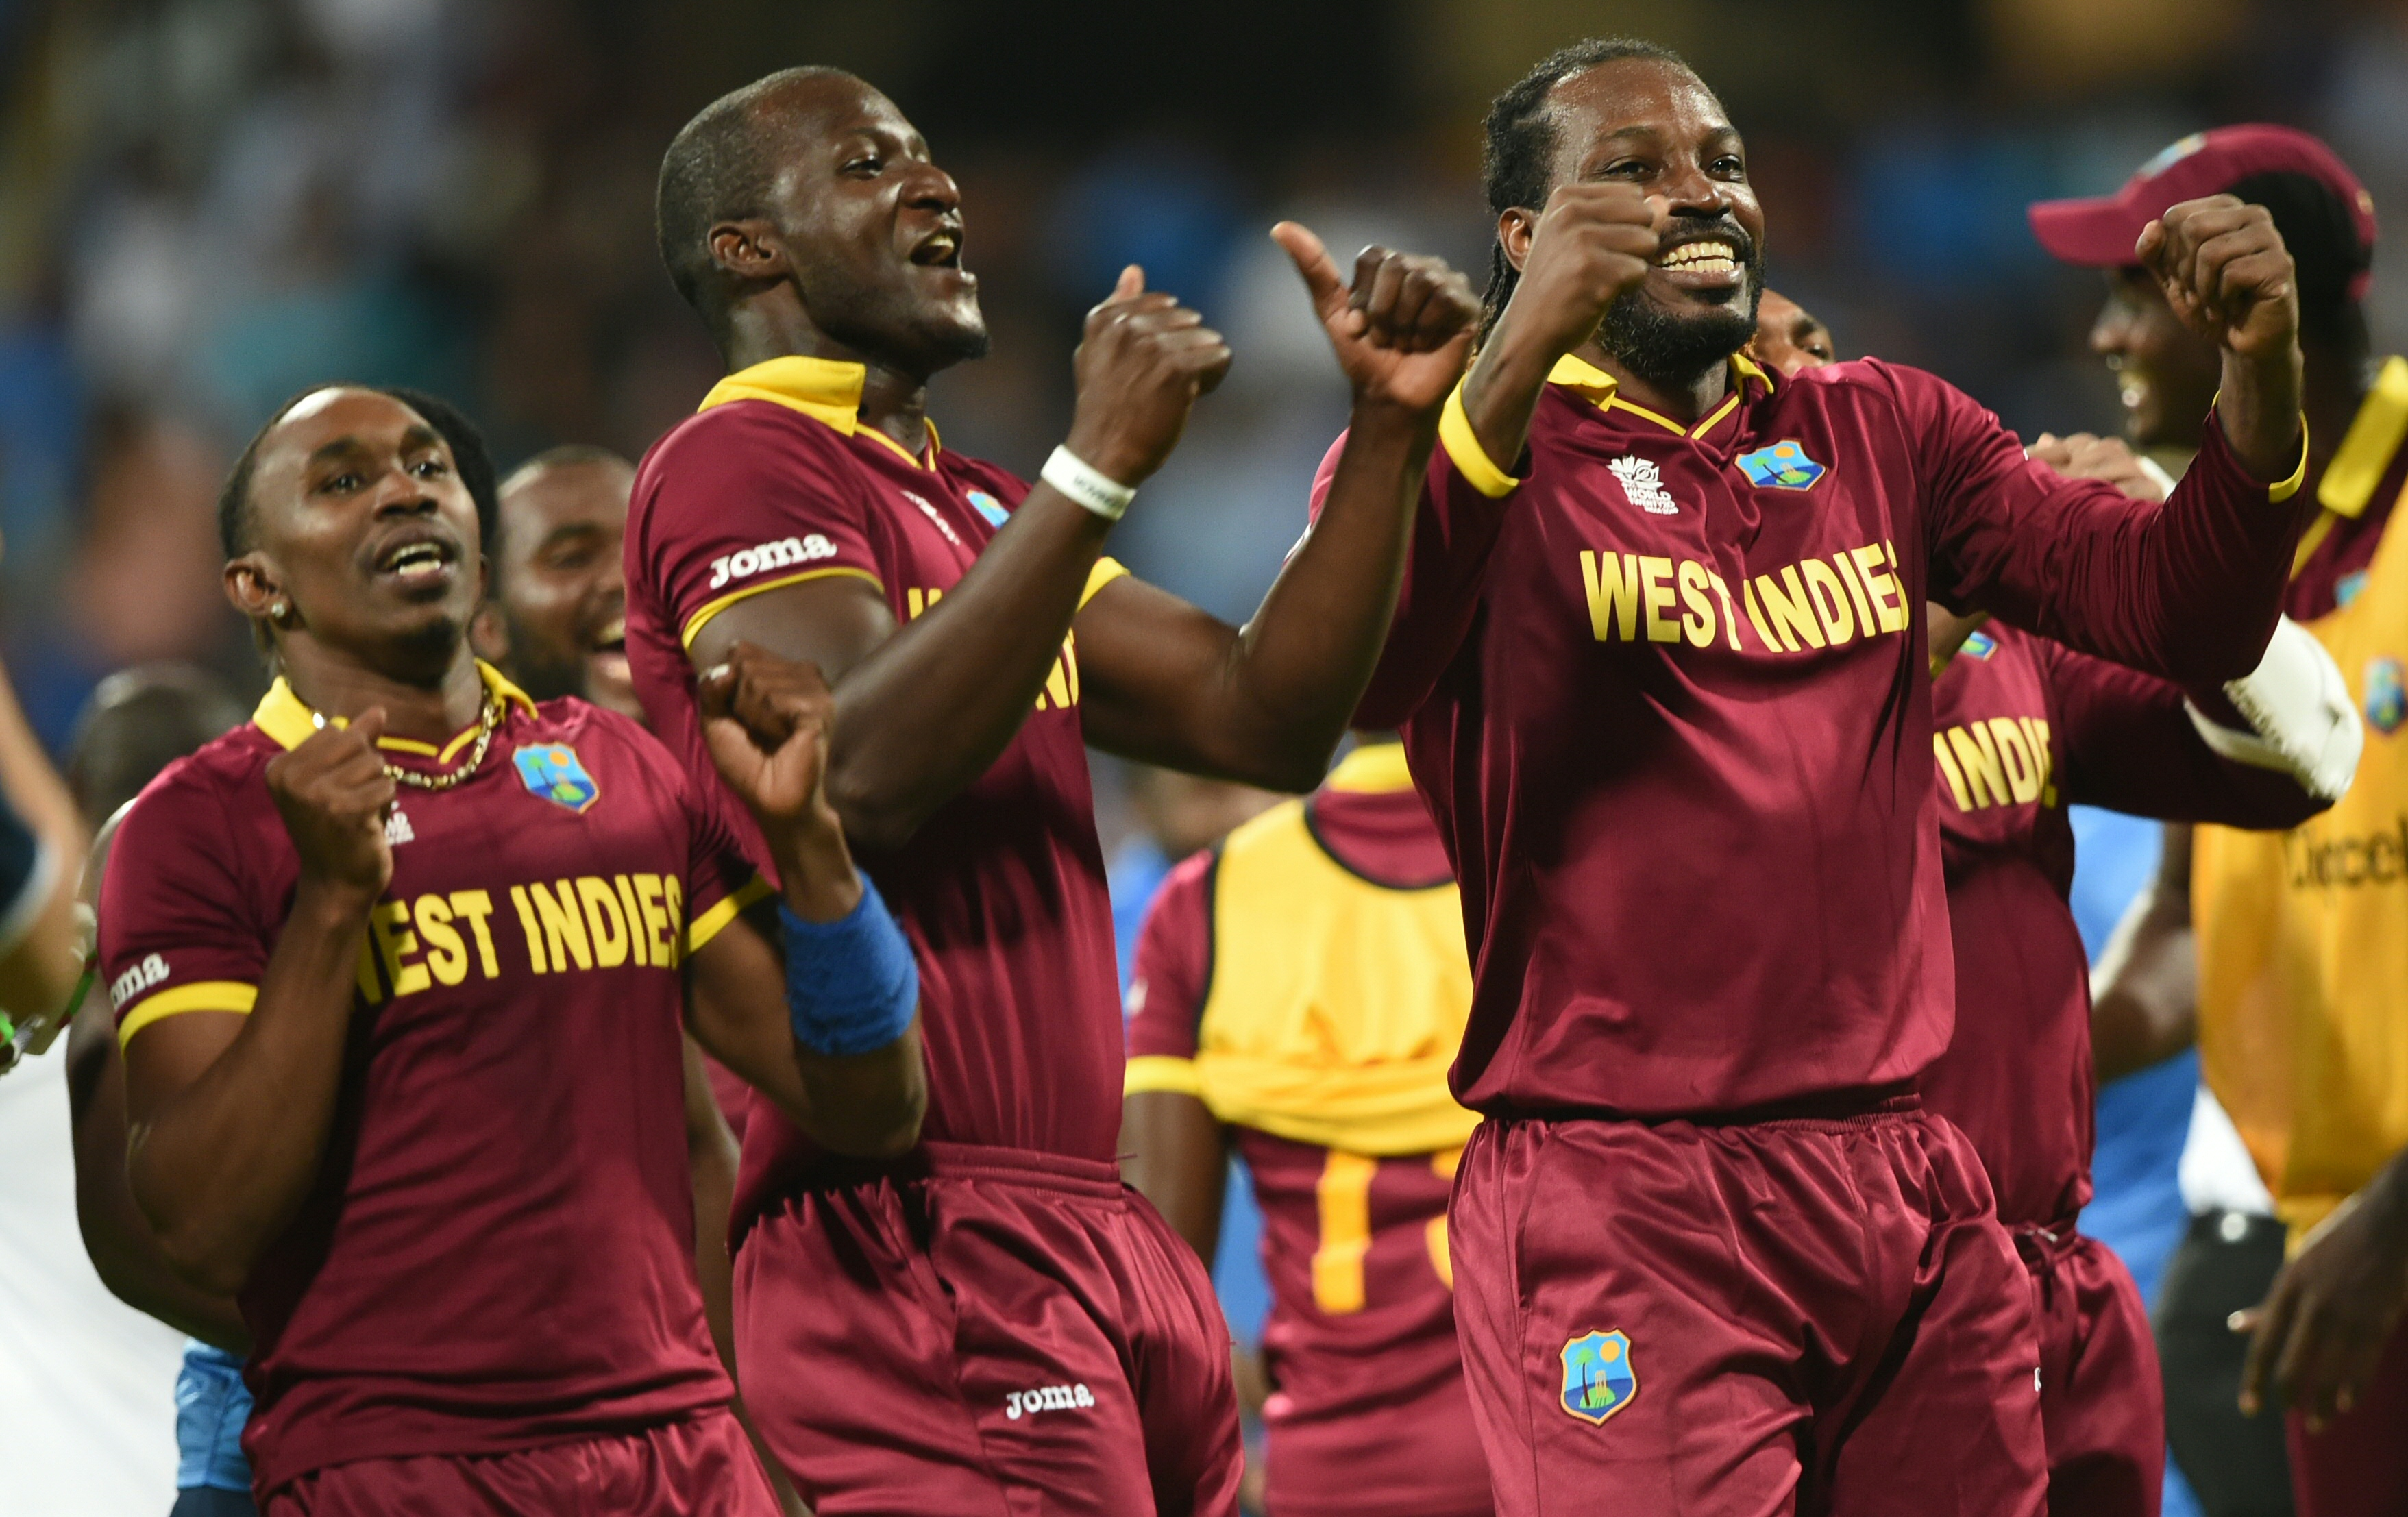 West Indies's captain Darren Sammy(C) Dwayne Bravo(L)and Chris Gayle(R)celebrate after victory in the World T20 cricket tournament second semi-final match between India and West Indies at The Wankhede Stadium in Mumbai on March 31, 2016. / AFP / INDRANIL MUKHERJEE